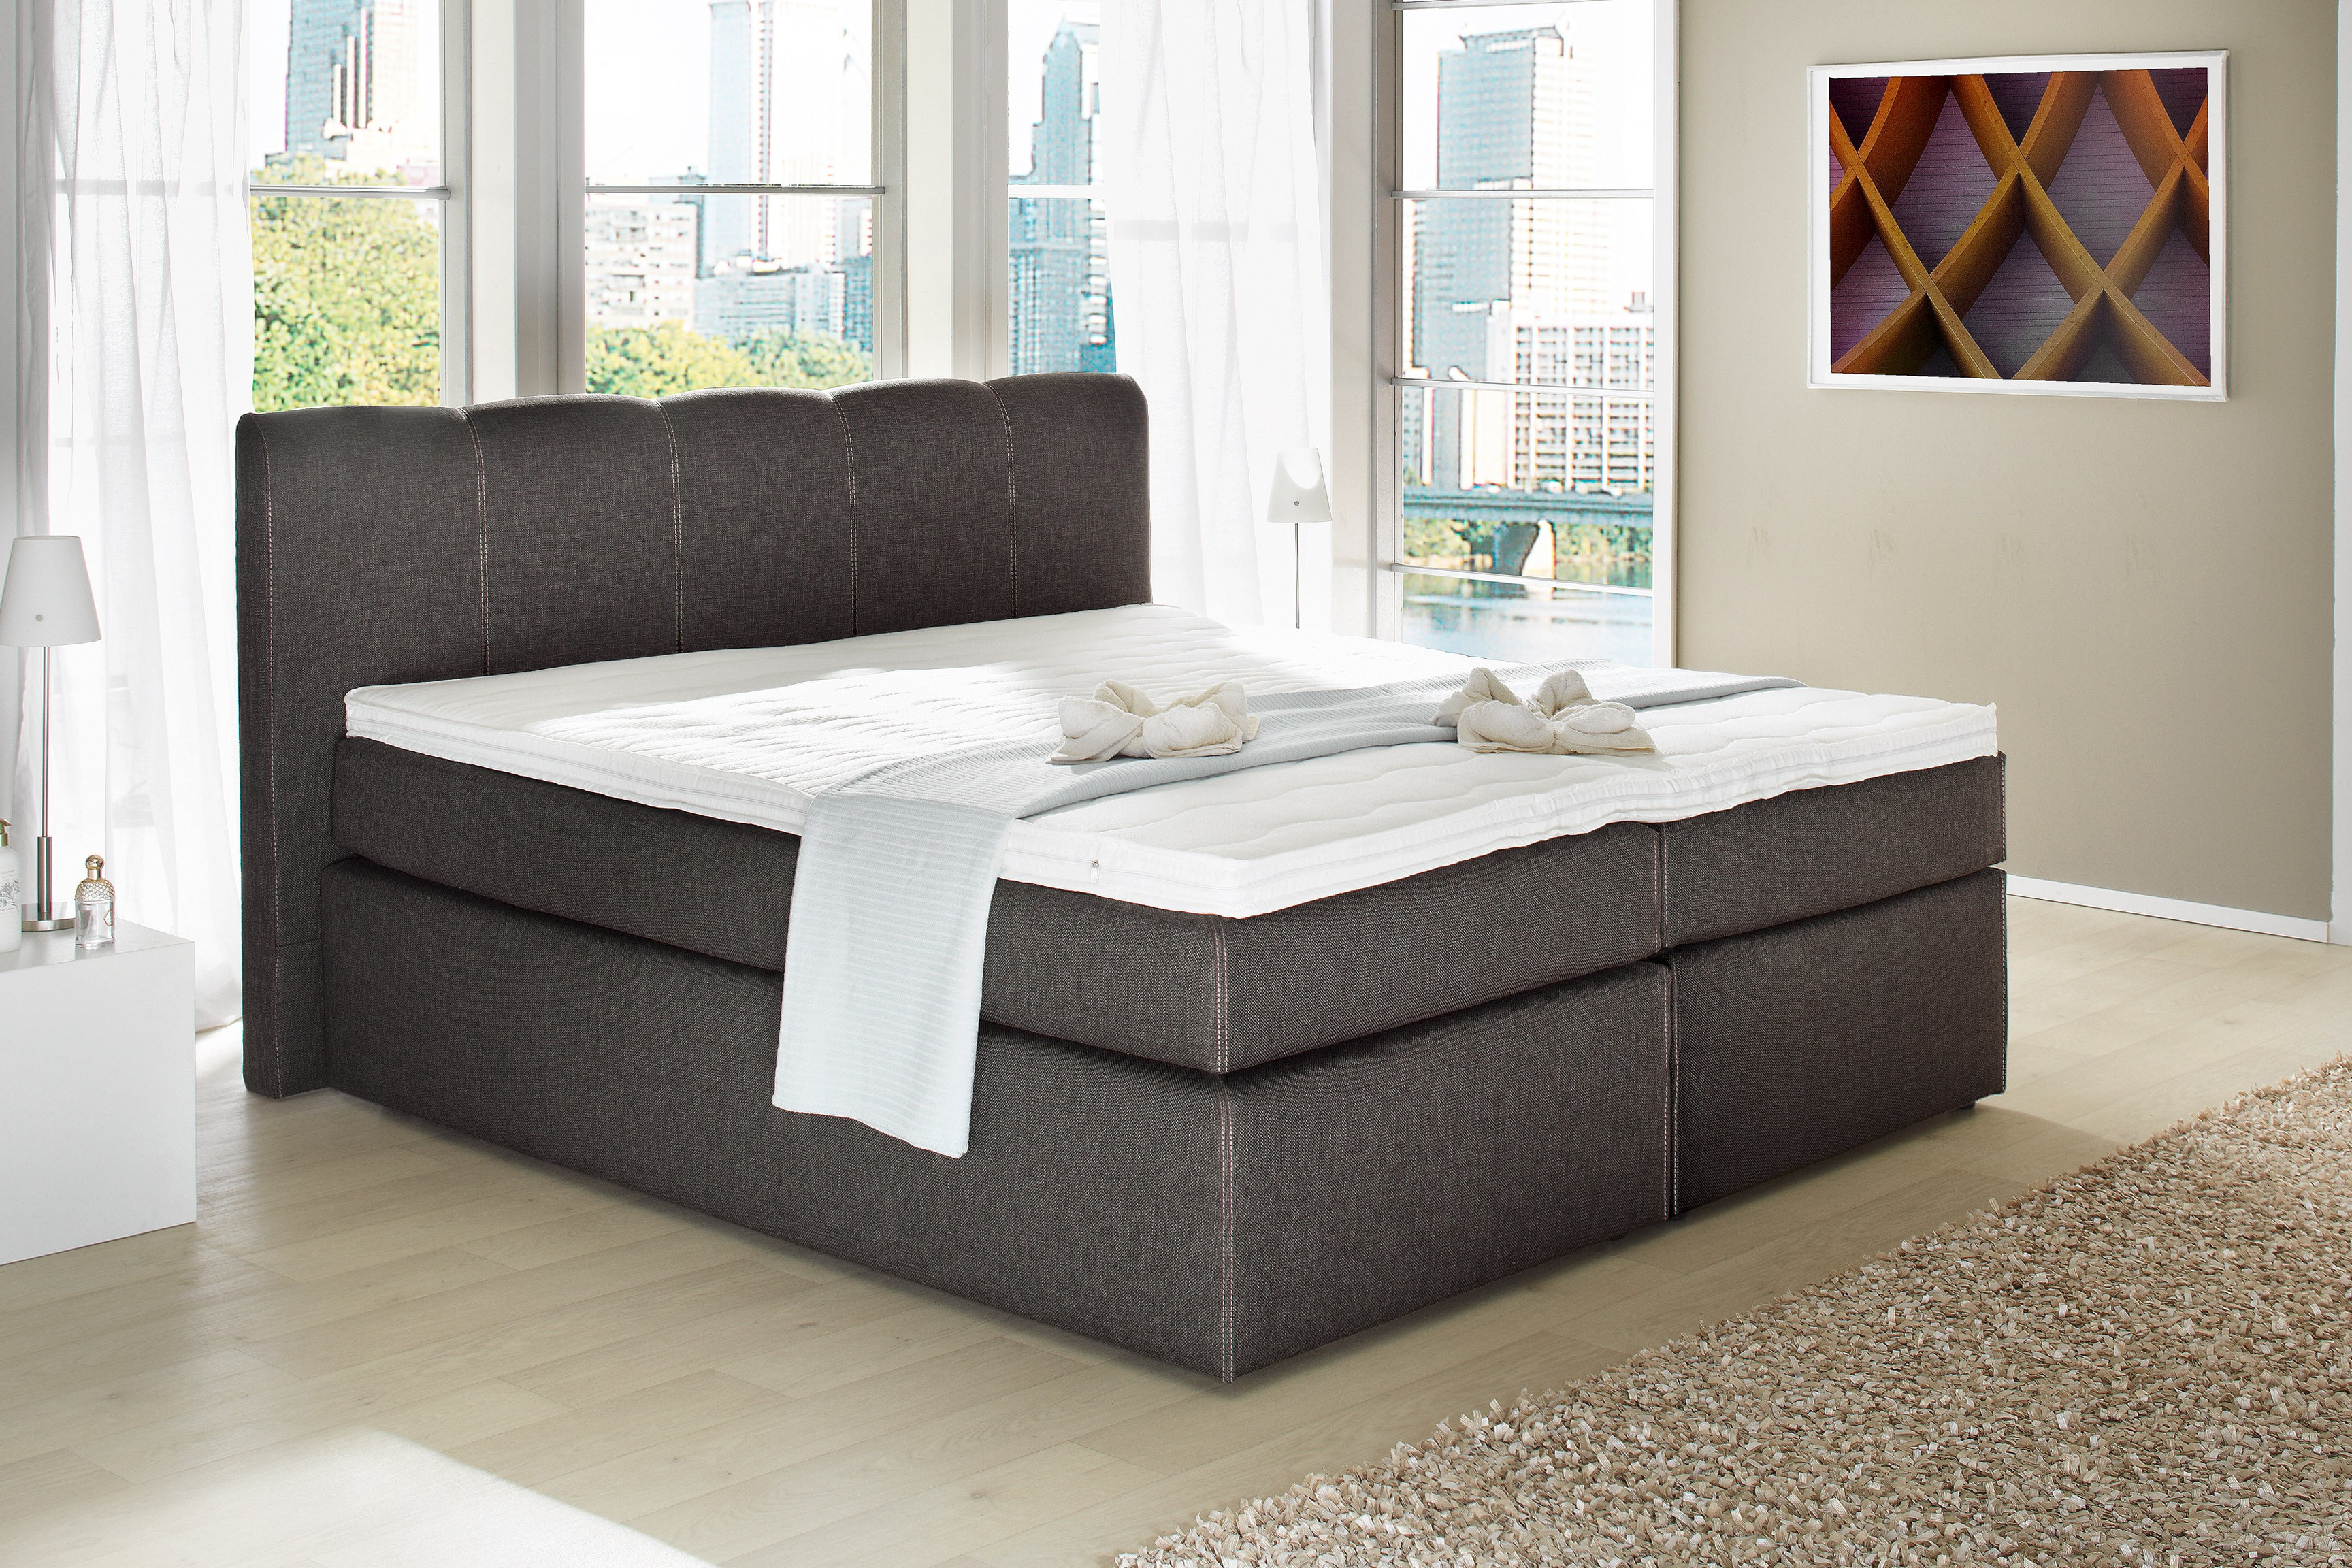 boxspringbett havena 180x200 cm braun. Black Bedroom Furniture Sets. Home Design Ideas